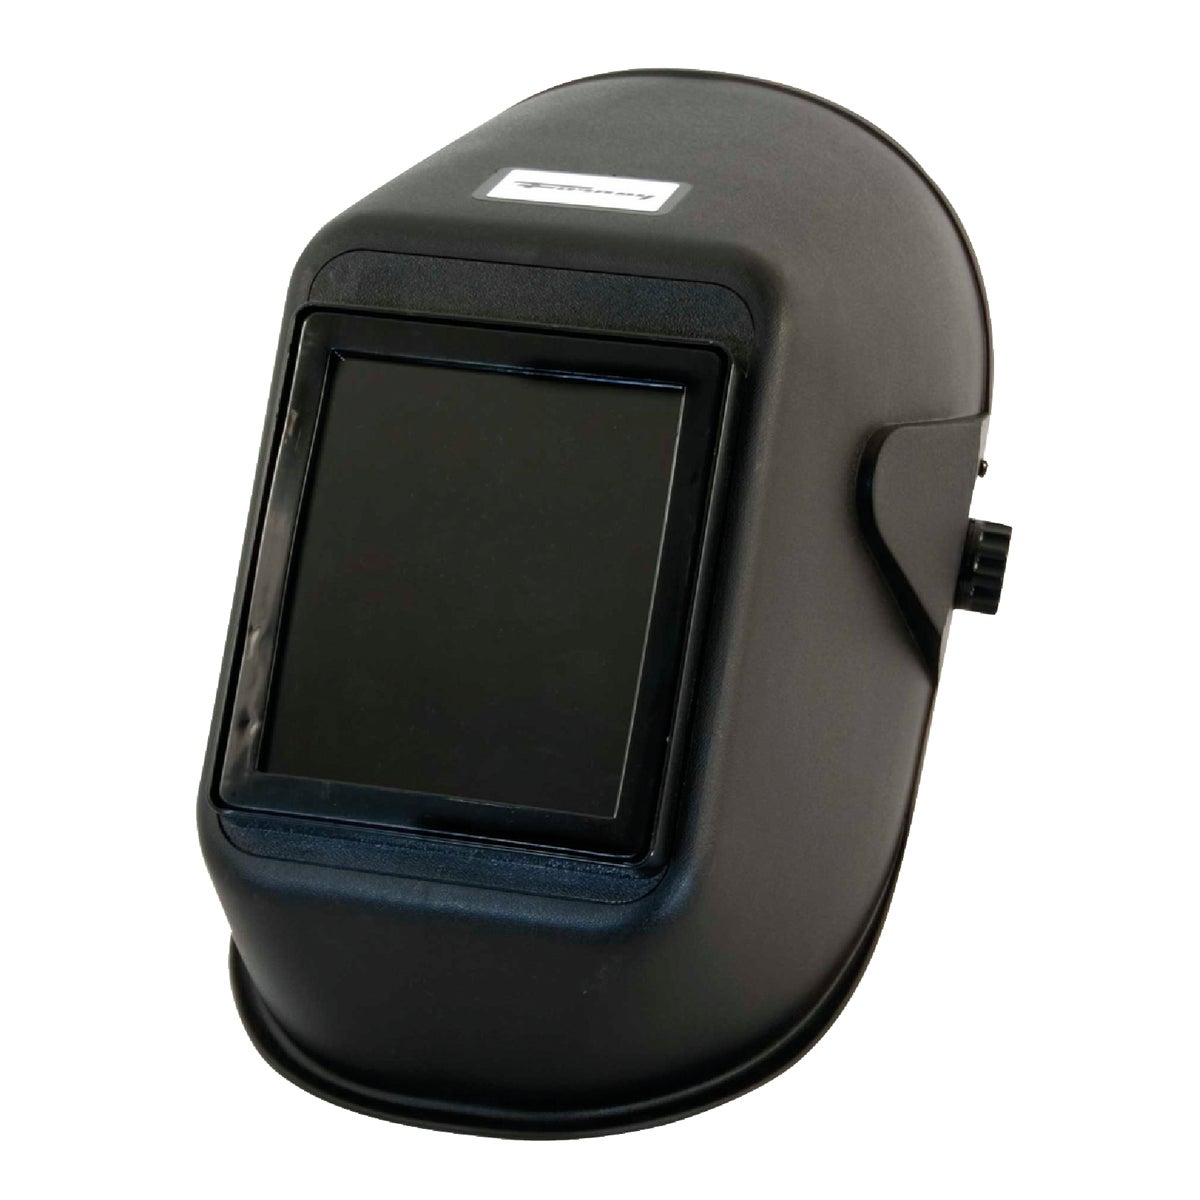 WELDING HELMET - 55673 by Forney Industries